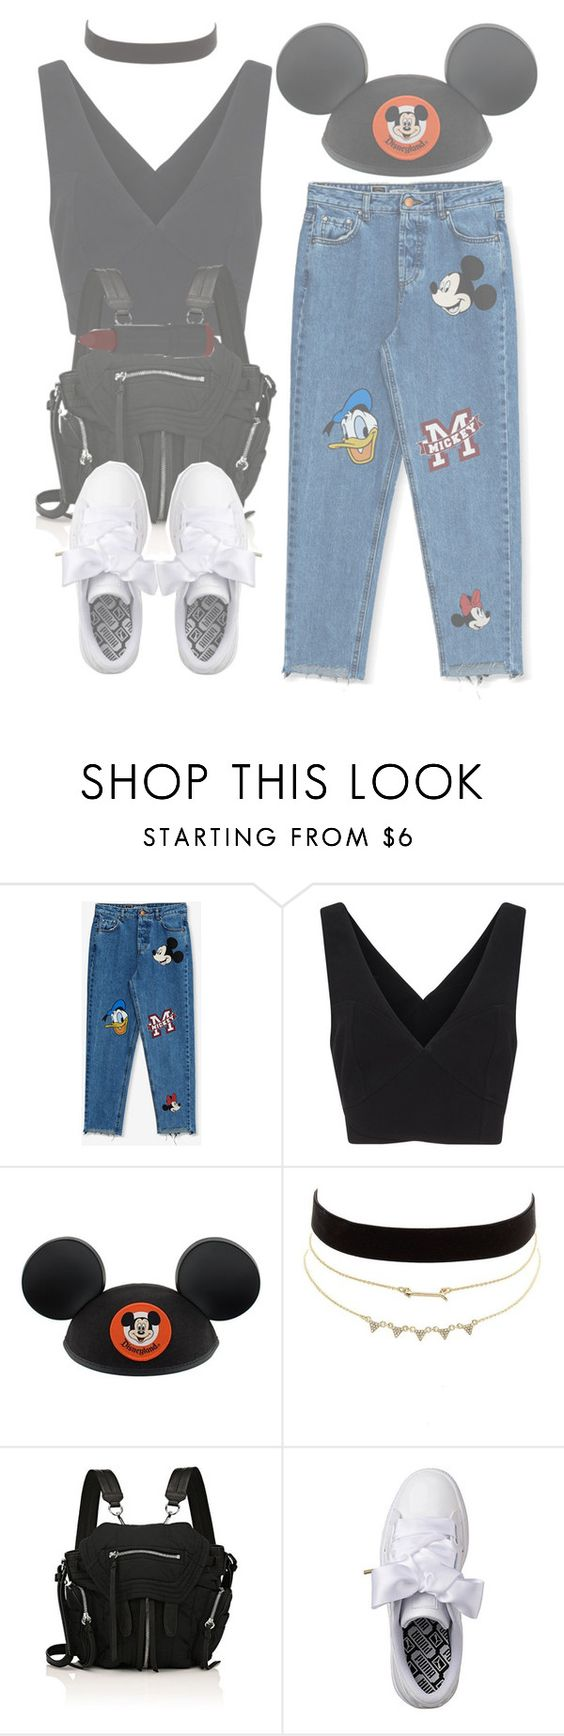 """are we there yet?"" by aurorasrose ❤ liked on Polyvore featuring Pull&Bear, Cinq à Sept, Disney, Charlotte Russe, Alexander Wang, Puma and NYX"